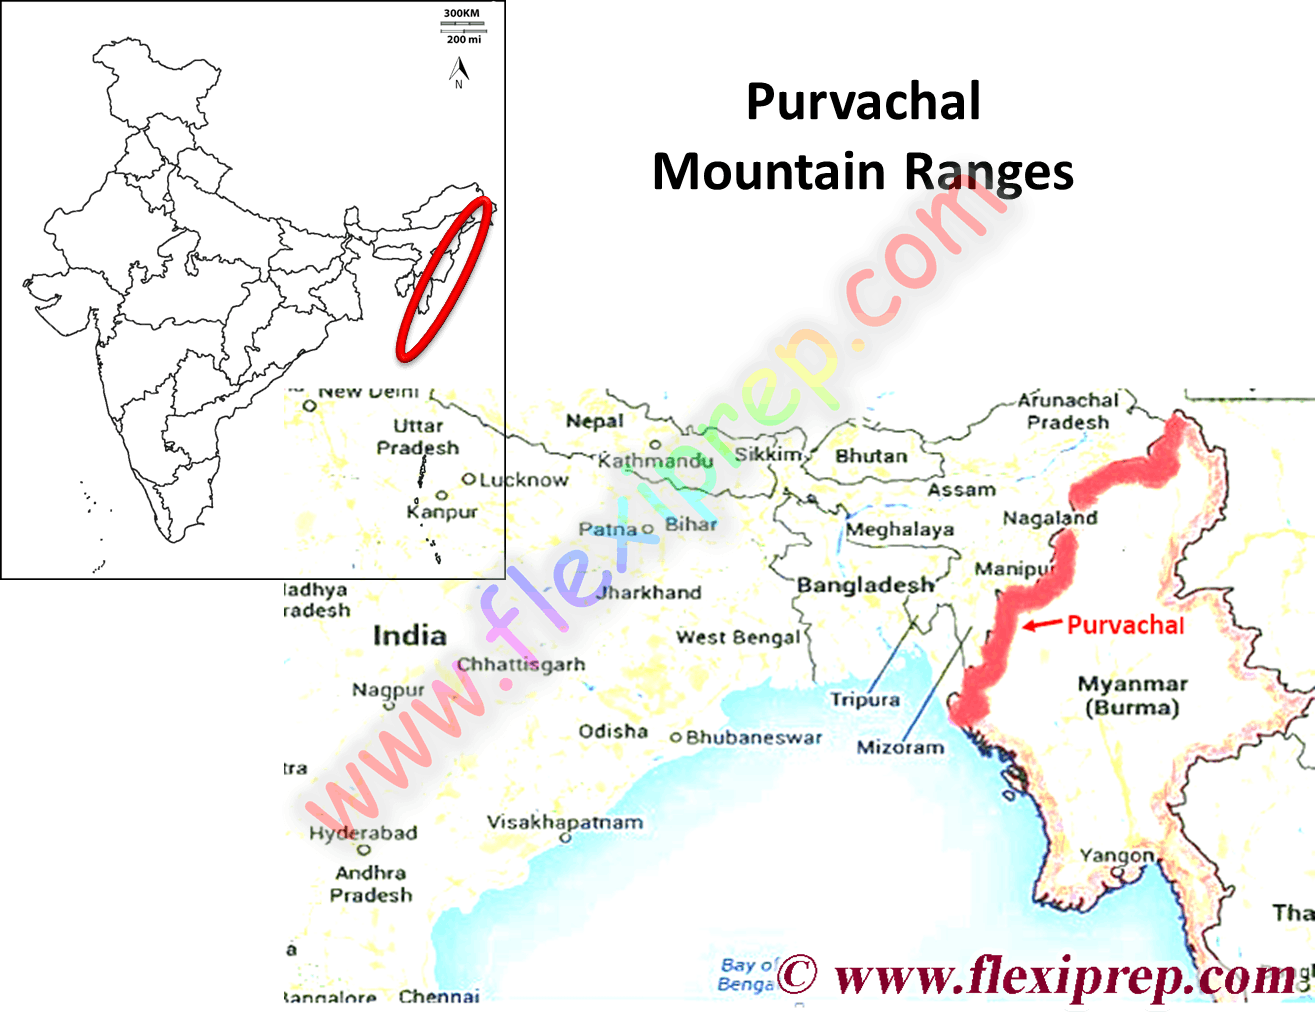 Purvachal a Mountain ranges in the eastern part of India share boundary with Myanmar